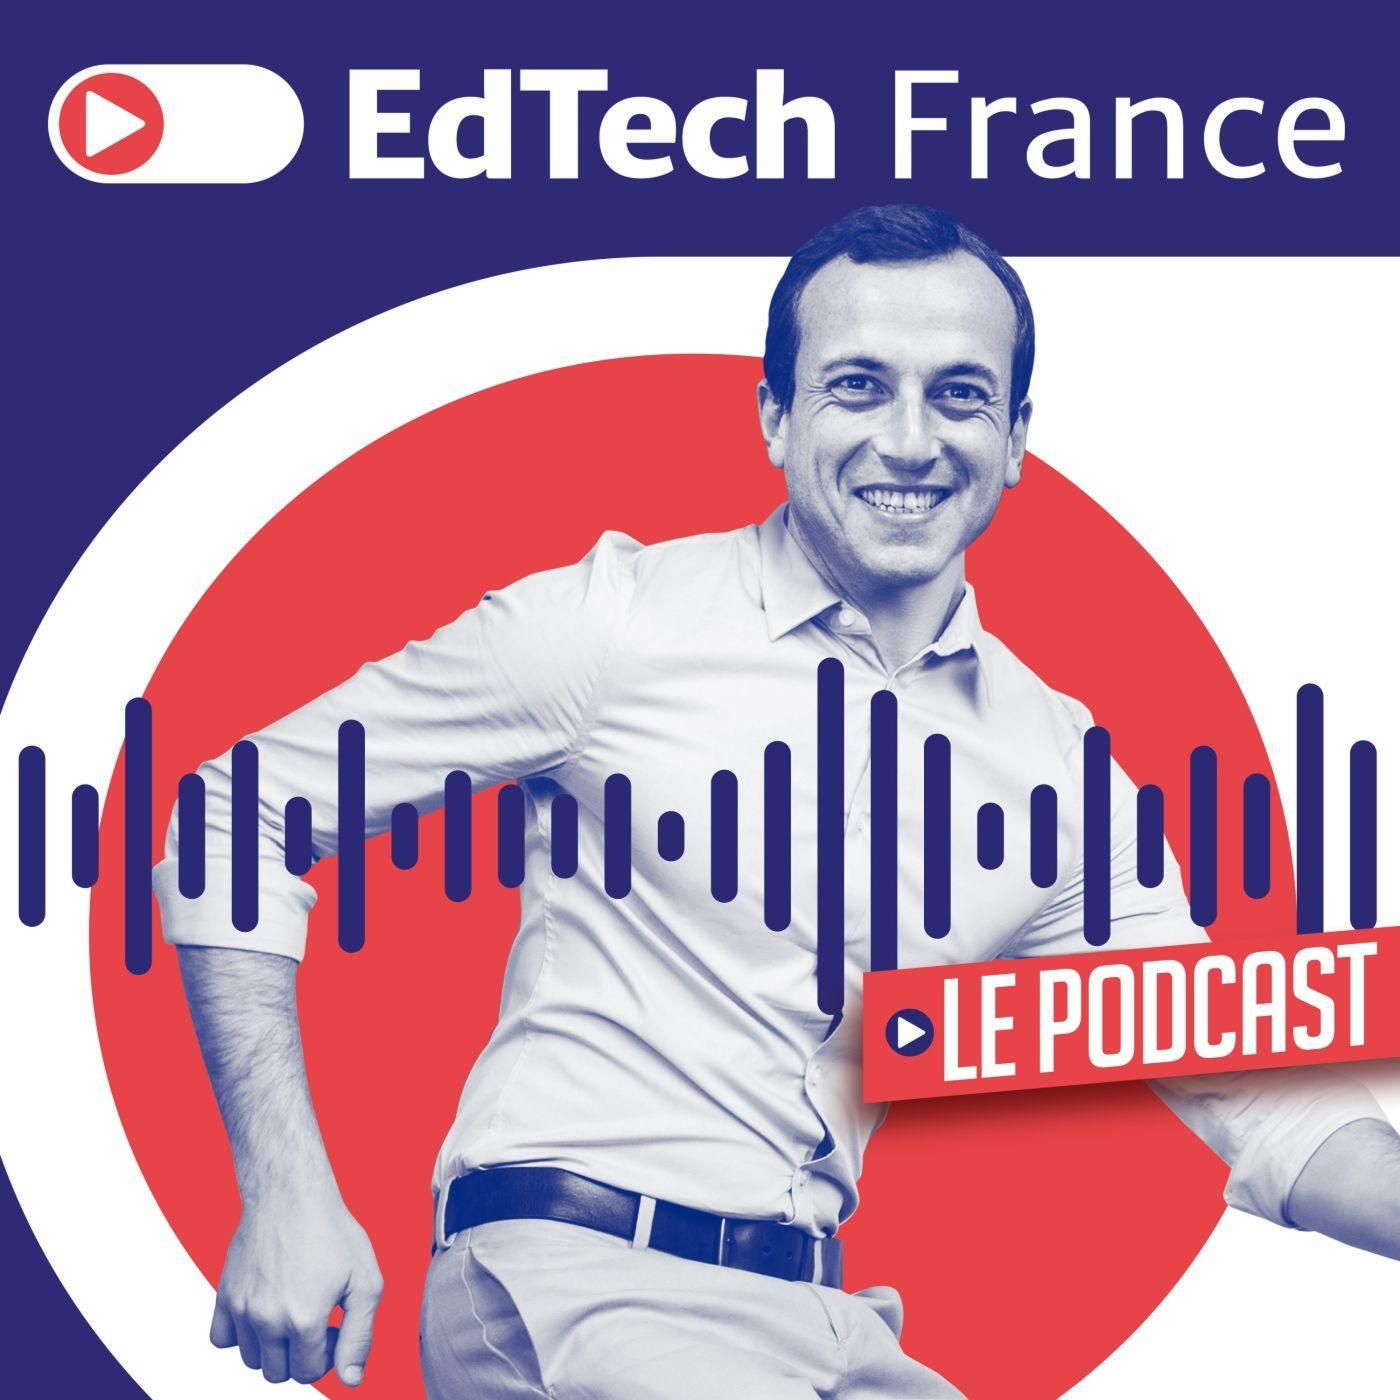 EdTech France podcast